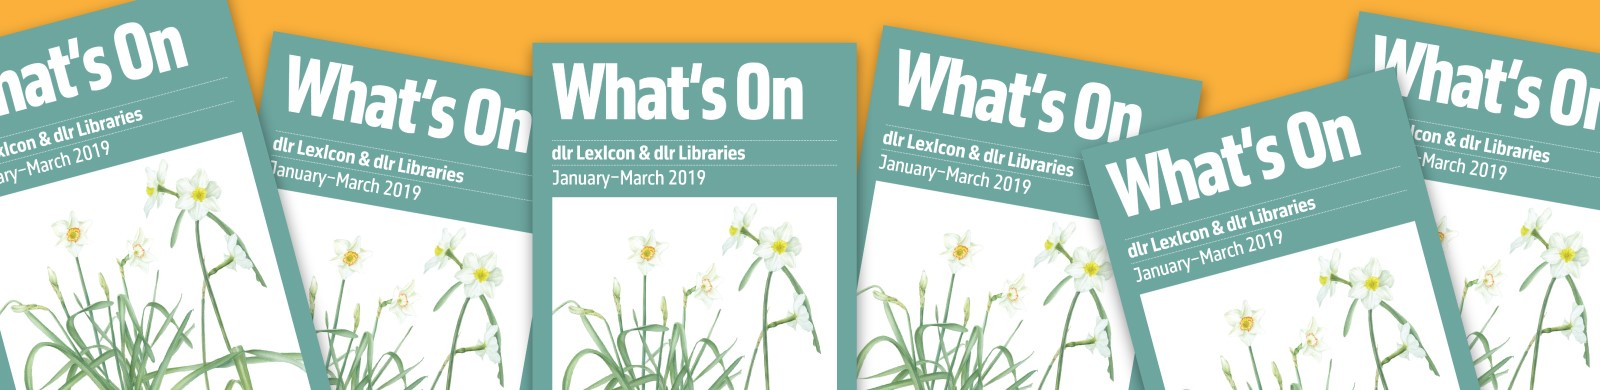 What's On Jan-March 2019